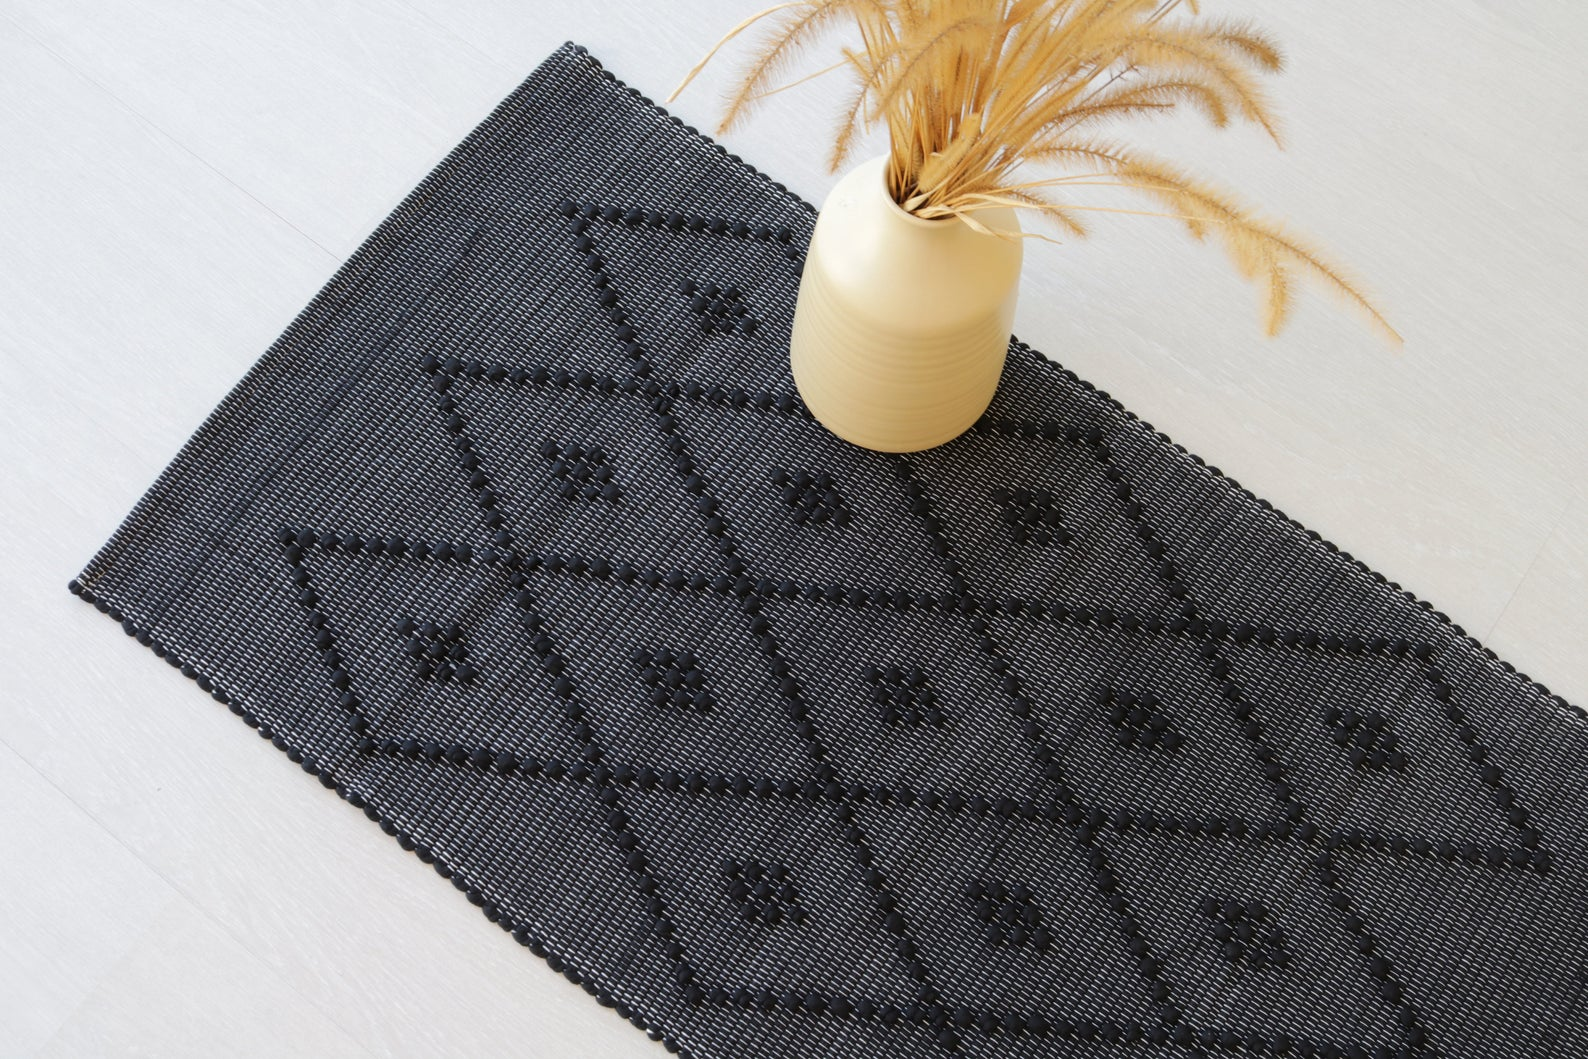 Small handwoven black rug, black mat, portuguese rug, cotton rug, bathroom rug, rug with knots, kitchen rug, bedroom rug, rag rug.